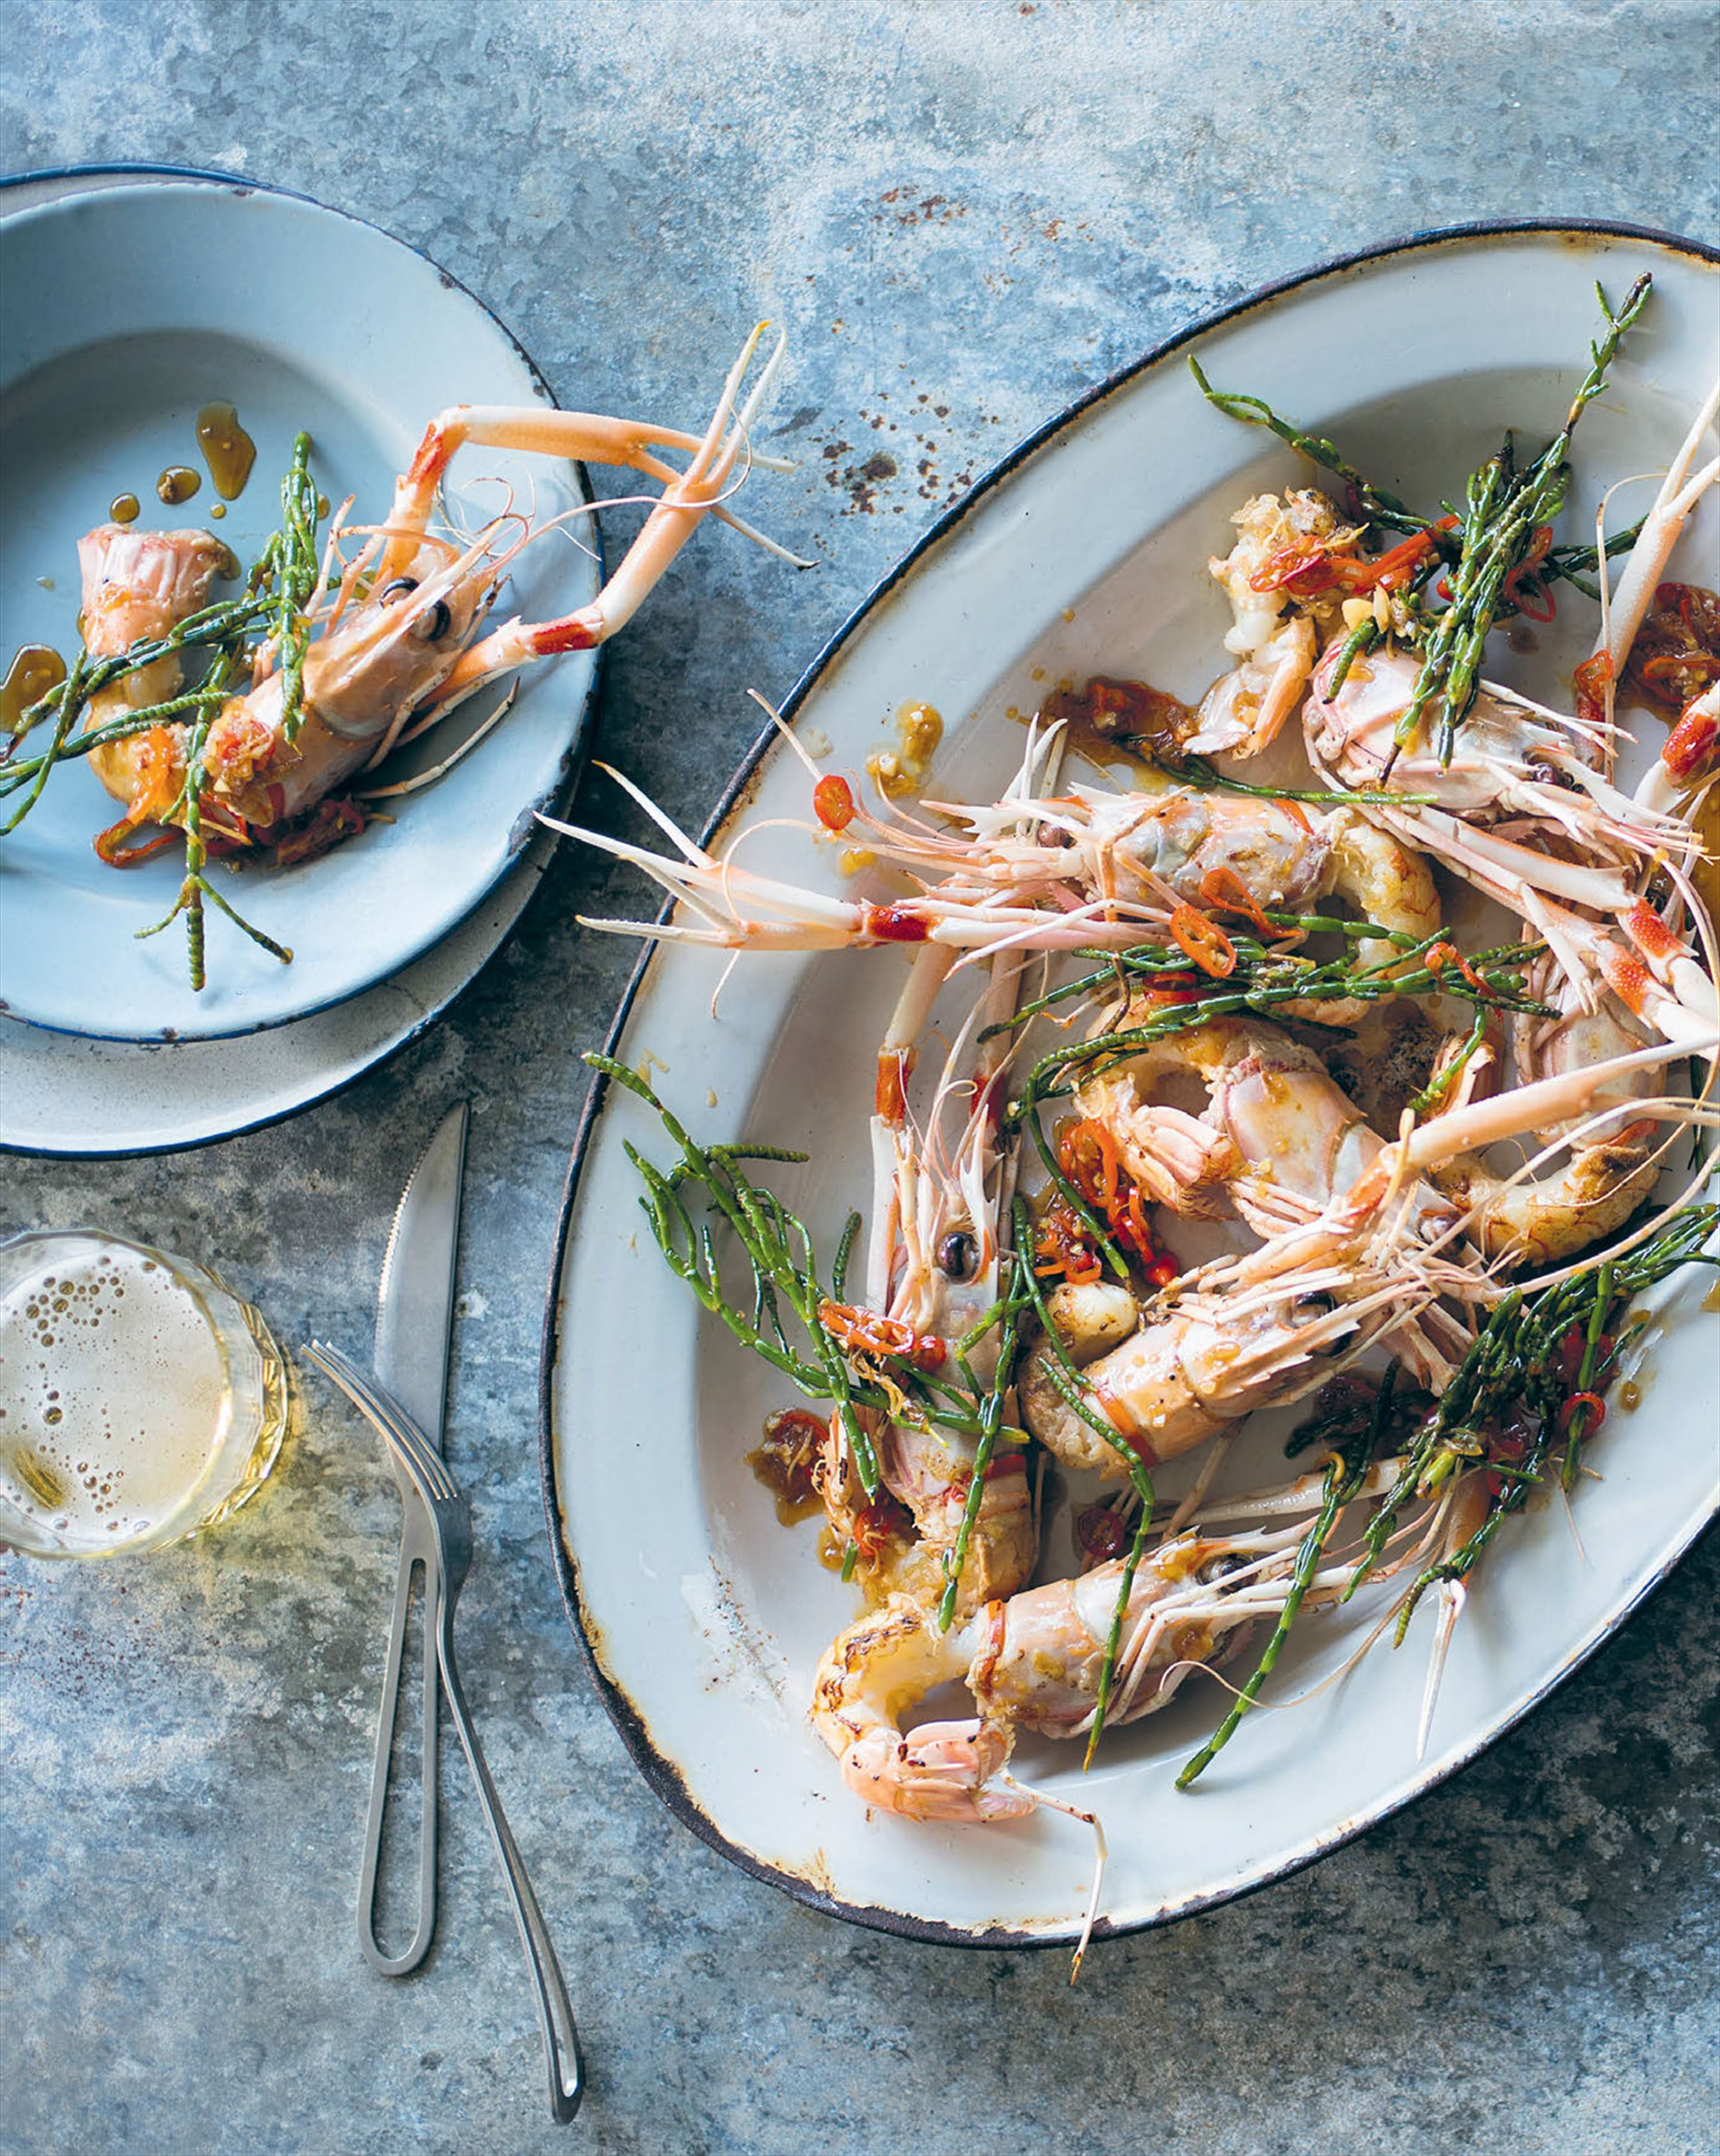 Wok-tossed langoustines with samphire & oyster sauce